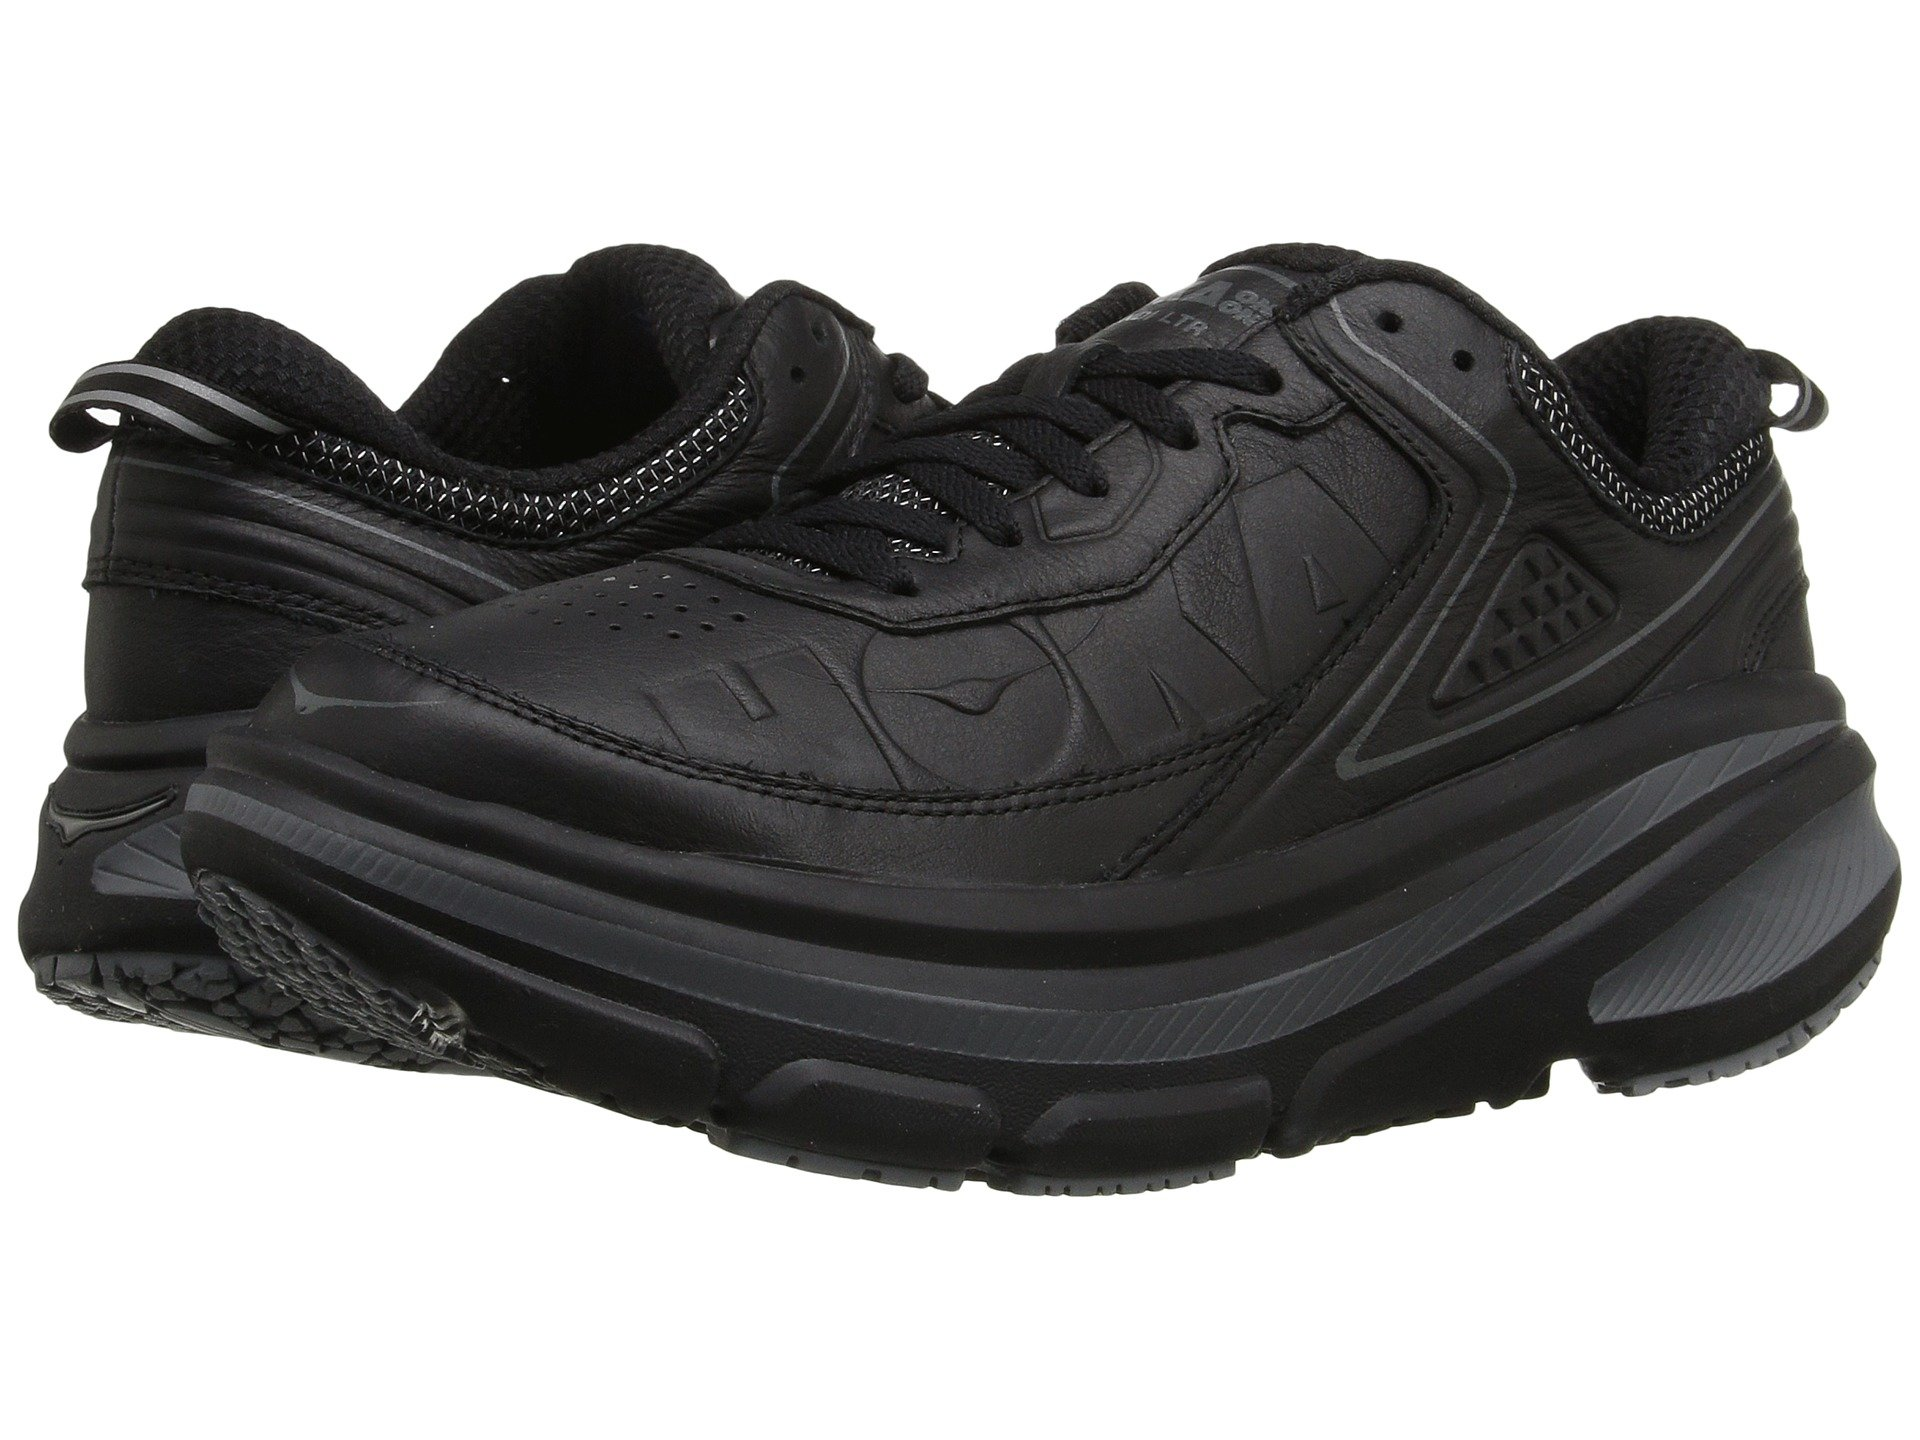 Women s Hoka One One Sneakers   Athletic Shoes + FREE SHIPPING 68368a6cc